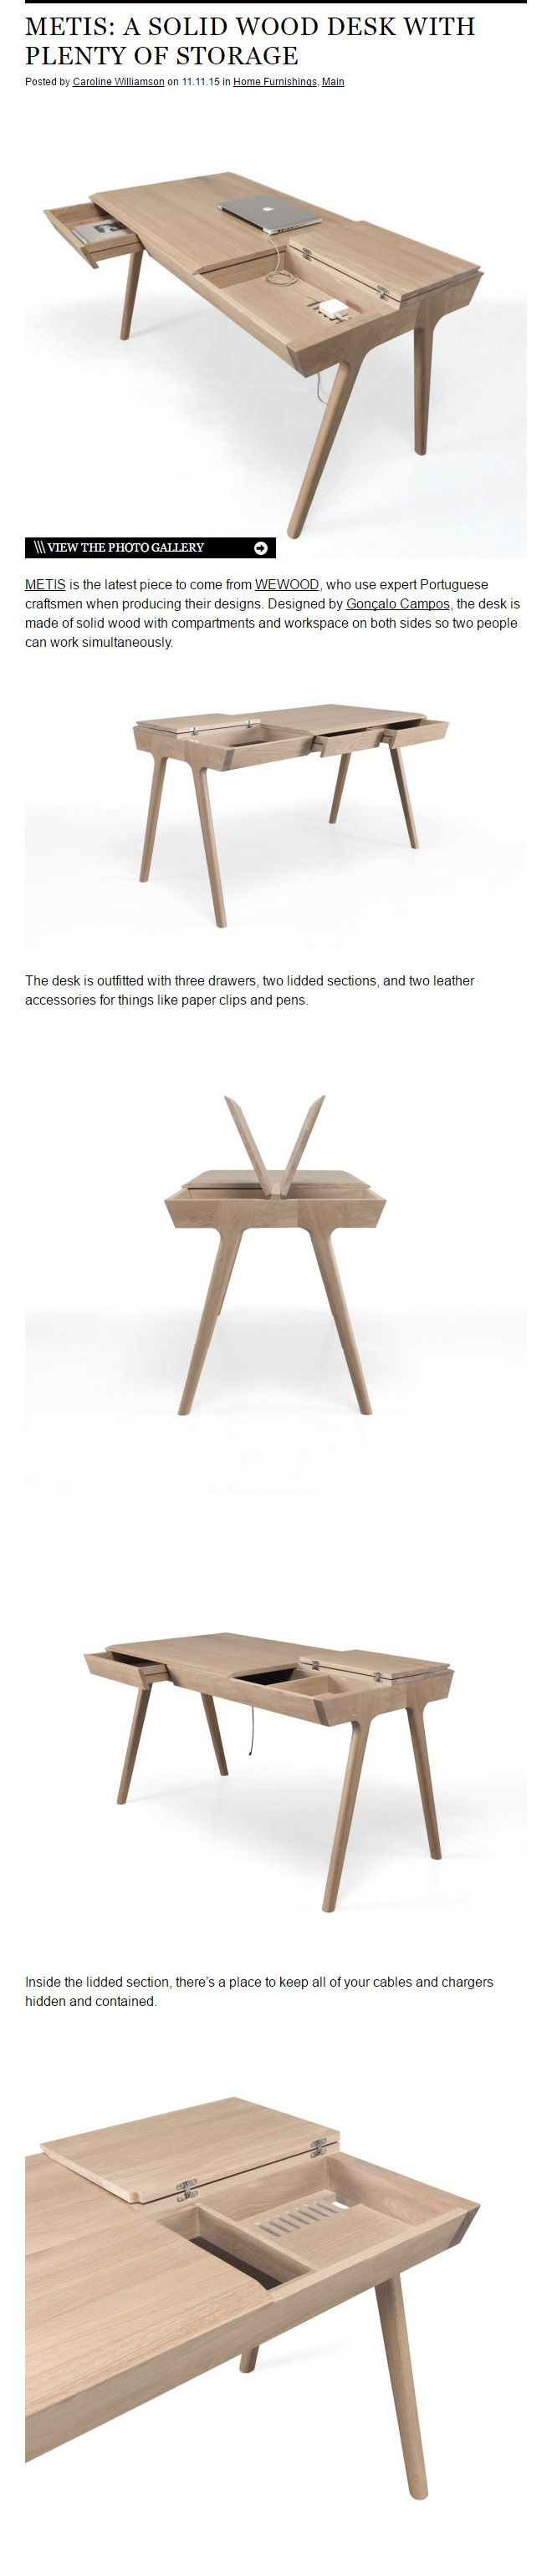 METIS: A SOLID WOOD DESK WITH PLENTY OF STORAGE - BY GONÇALO CAMPOS  http://www.goncalocampos.com/  http://www.wewood.eu/products/desks/metis